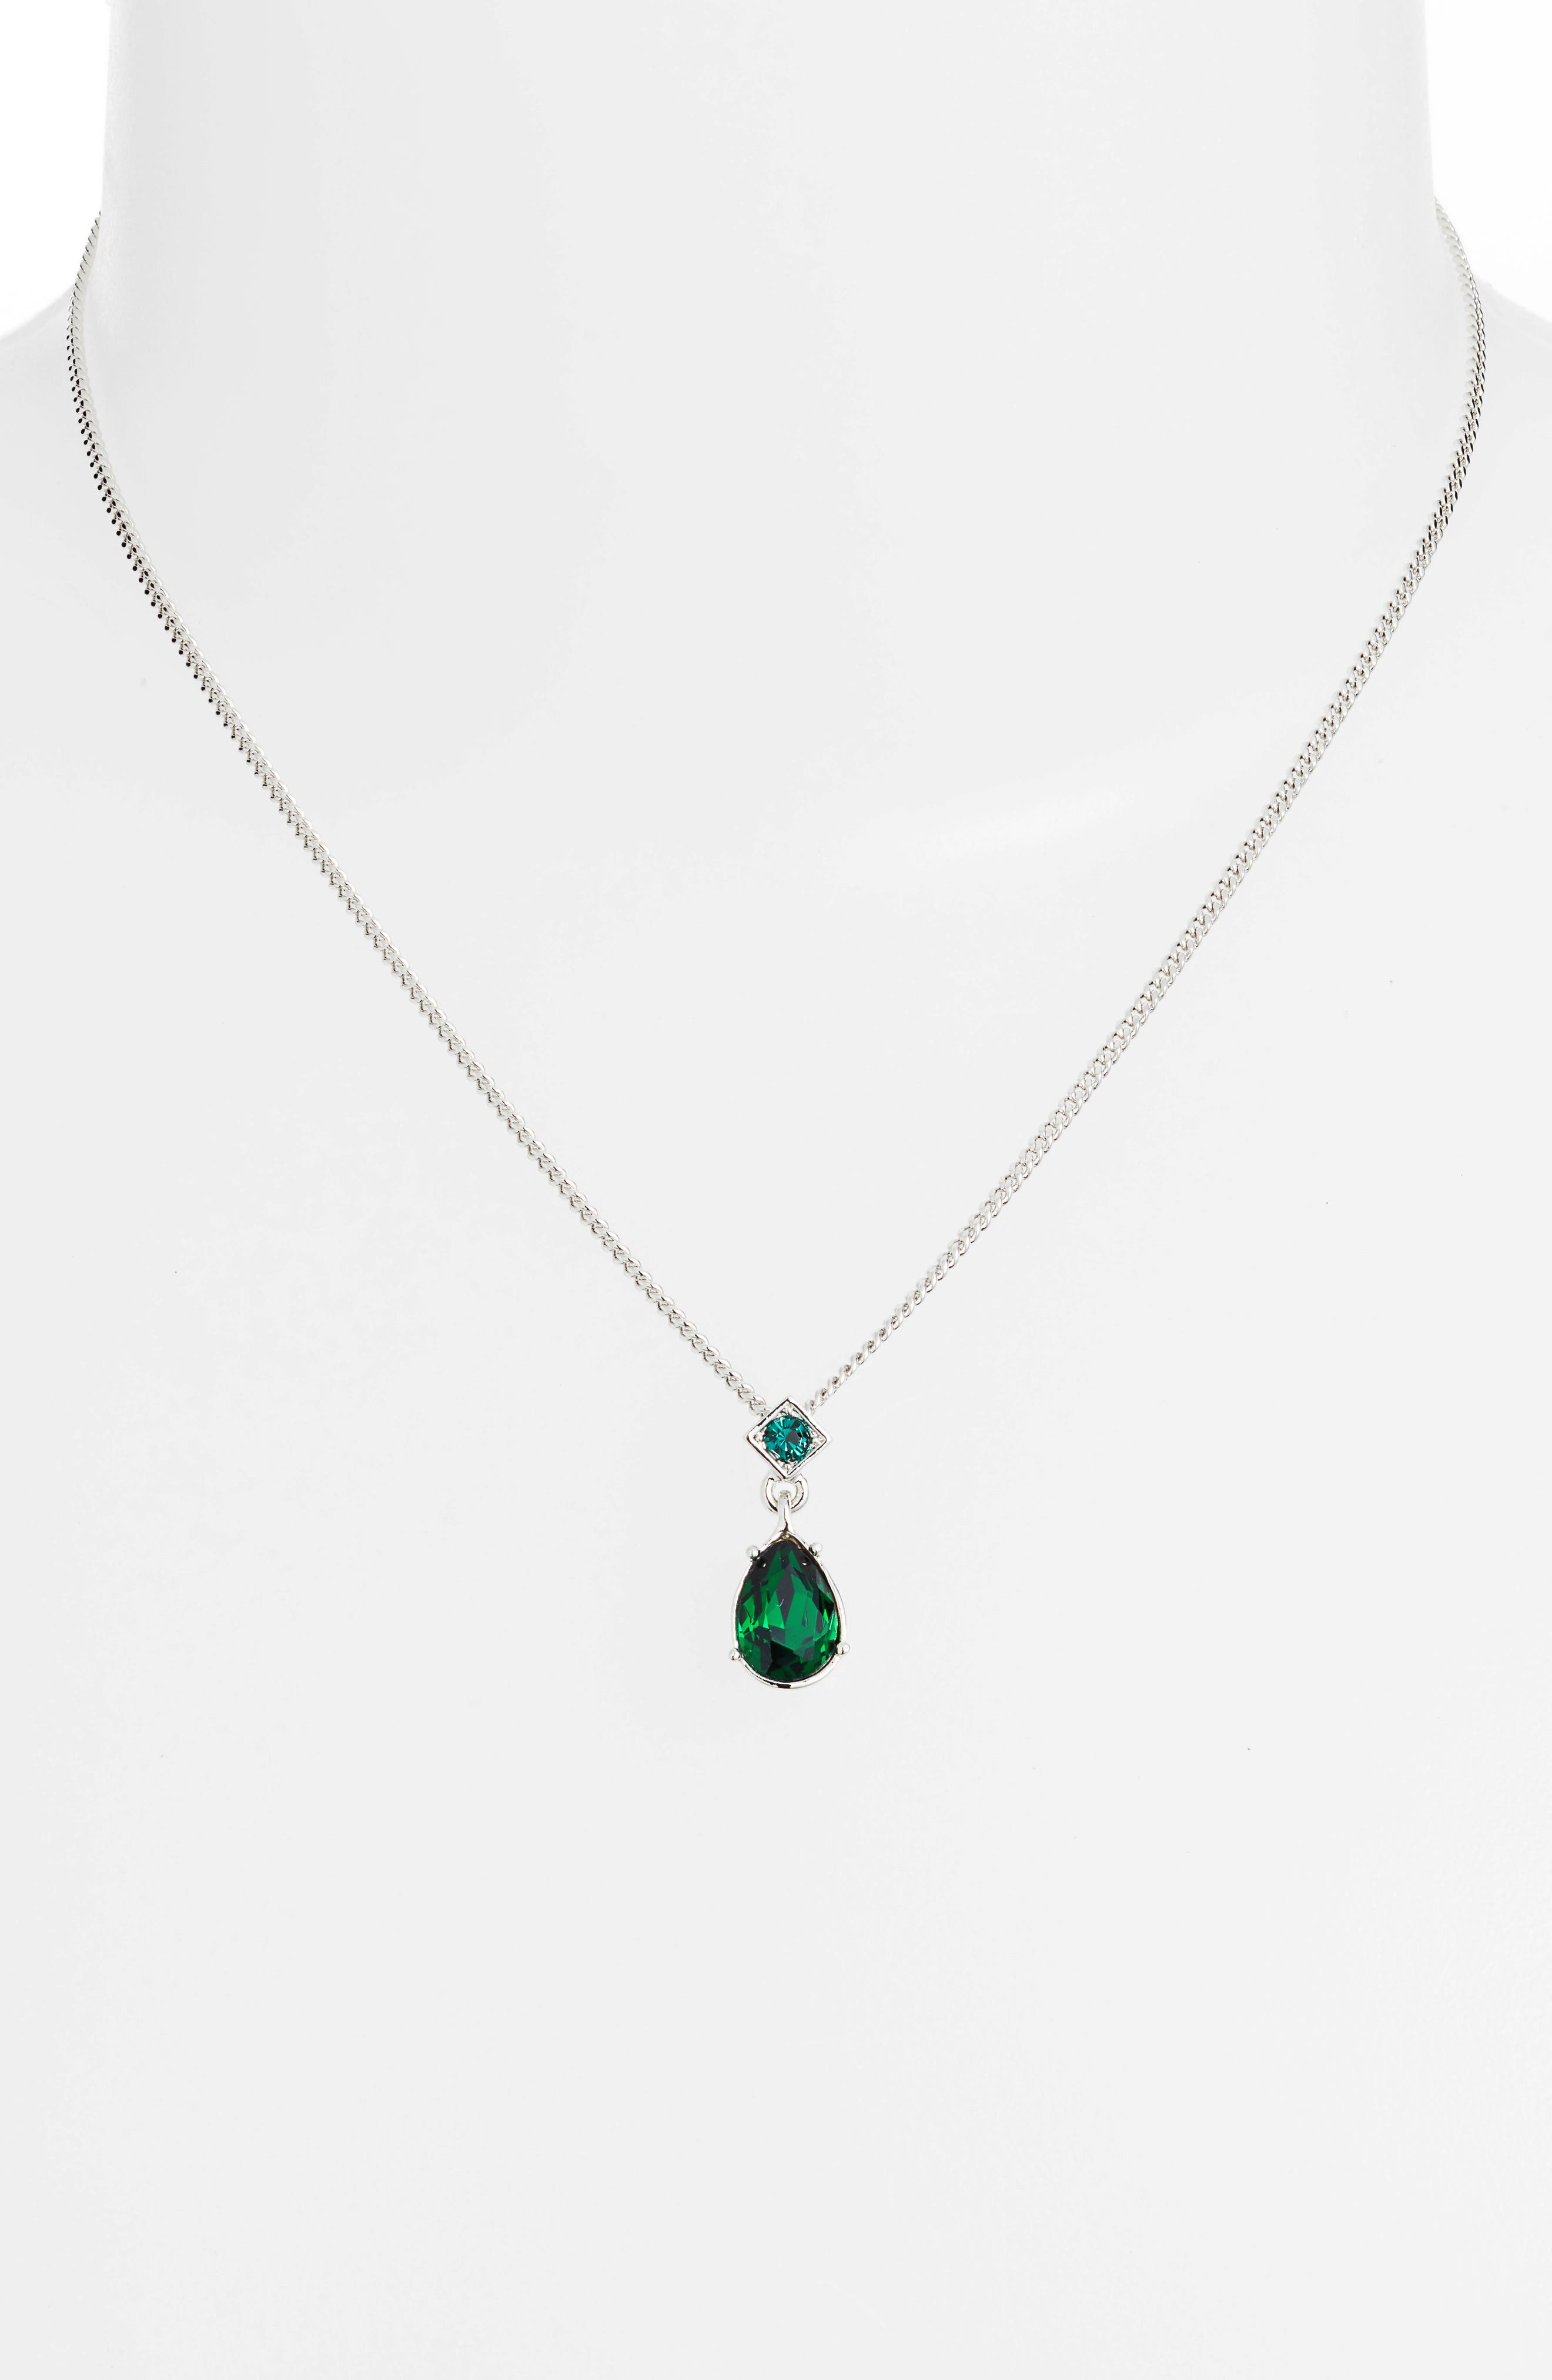 Drop Necklace & Earrings Set,                             Alternate thumbnail 2, color,                             GREEN/ SILVER